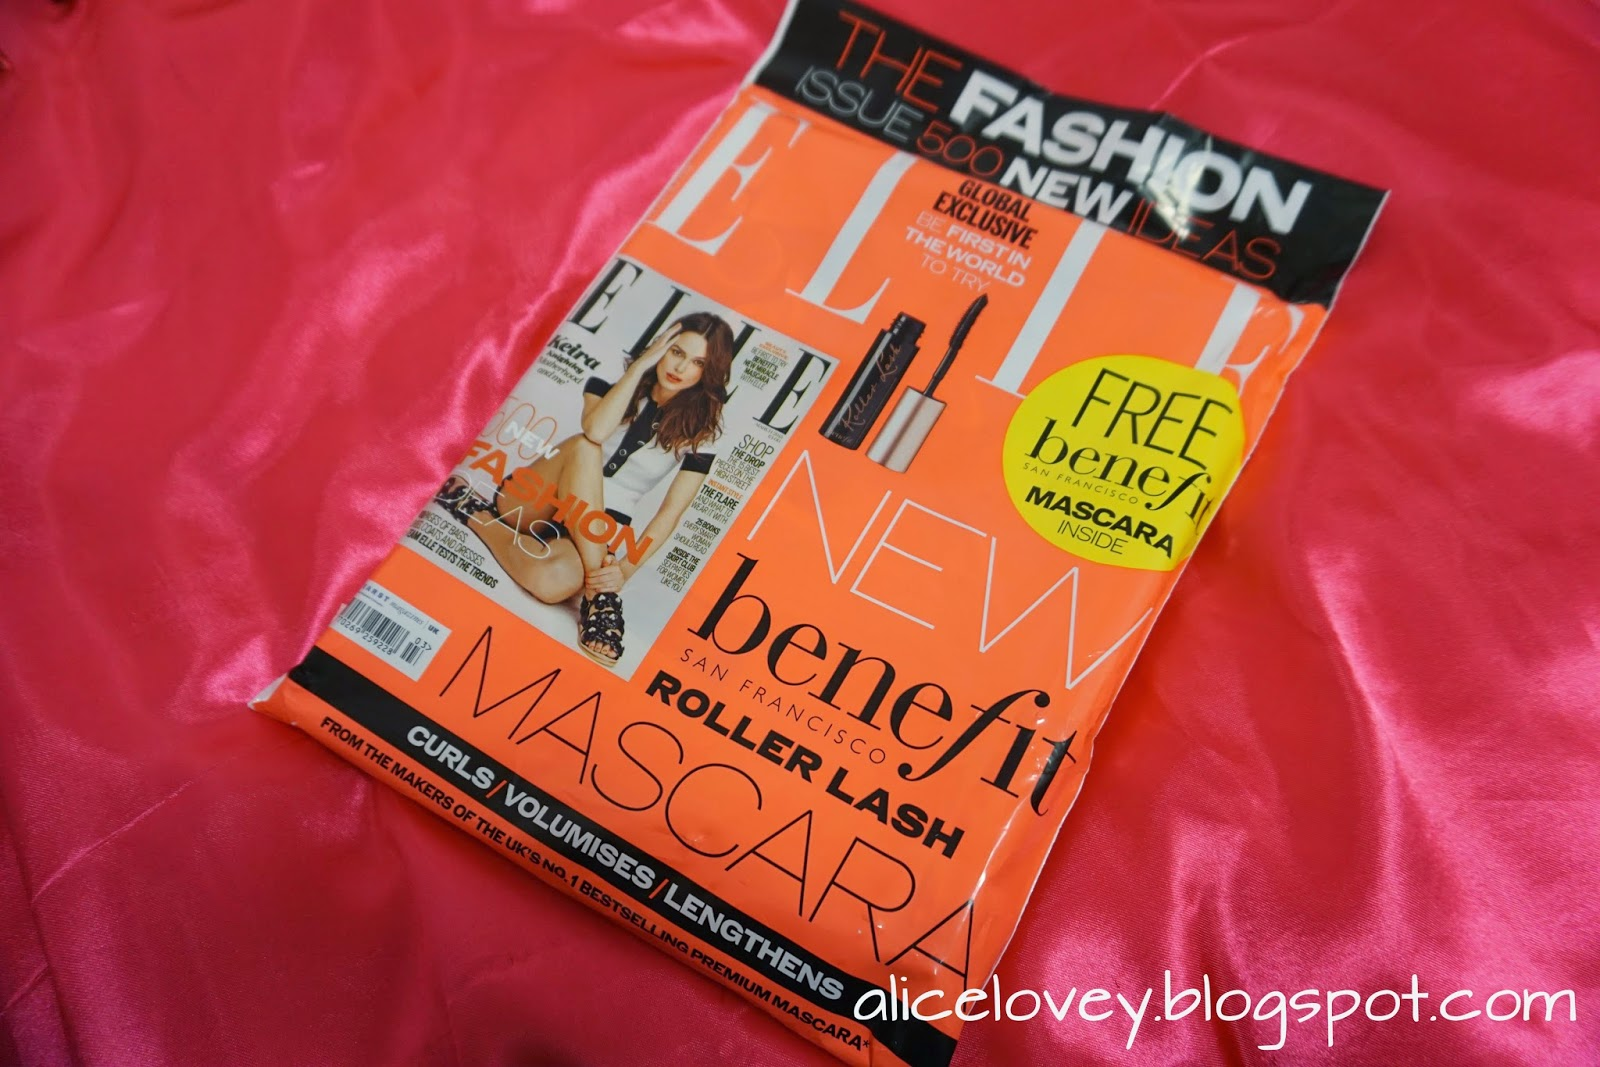 5db391a83f0 I am sure many of us LOVE Benefit products and just for £4.00 for the Elle  March Edition magazine, you are able to get a FREE Benefit newest line of  mascara ...